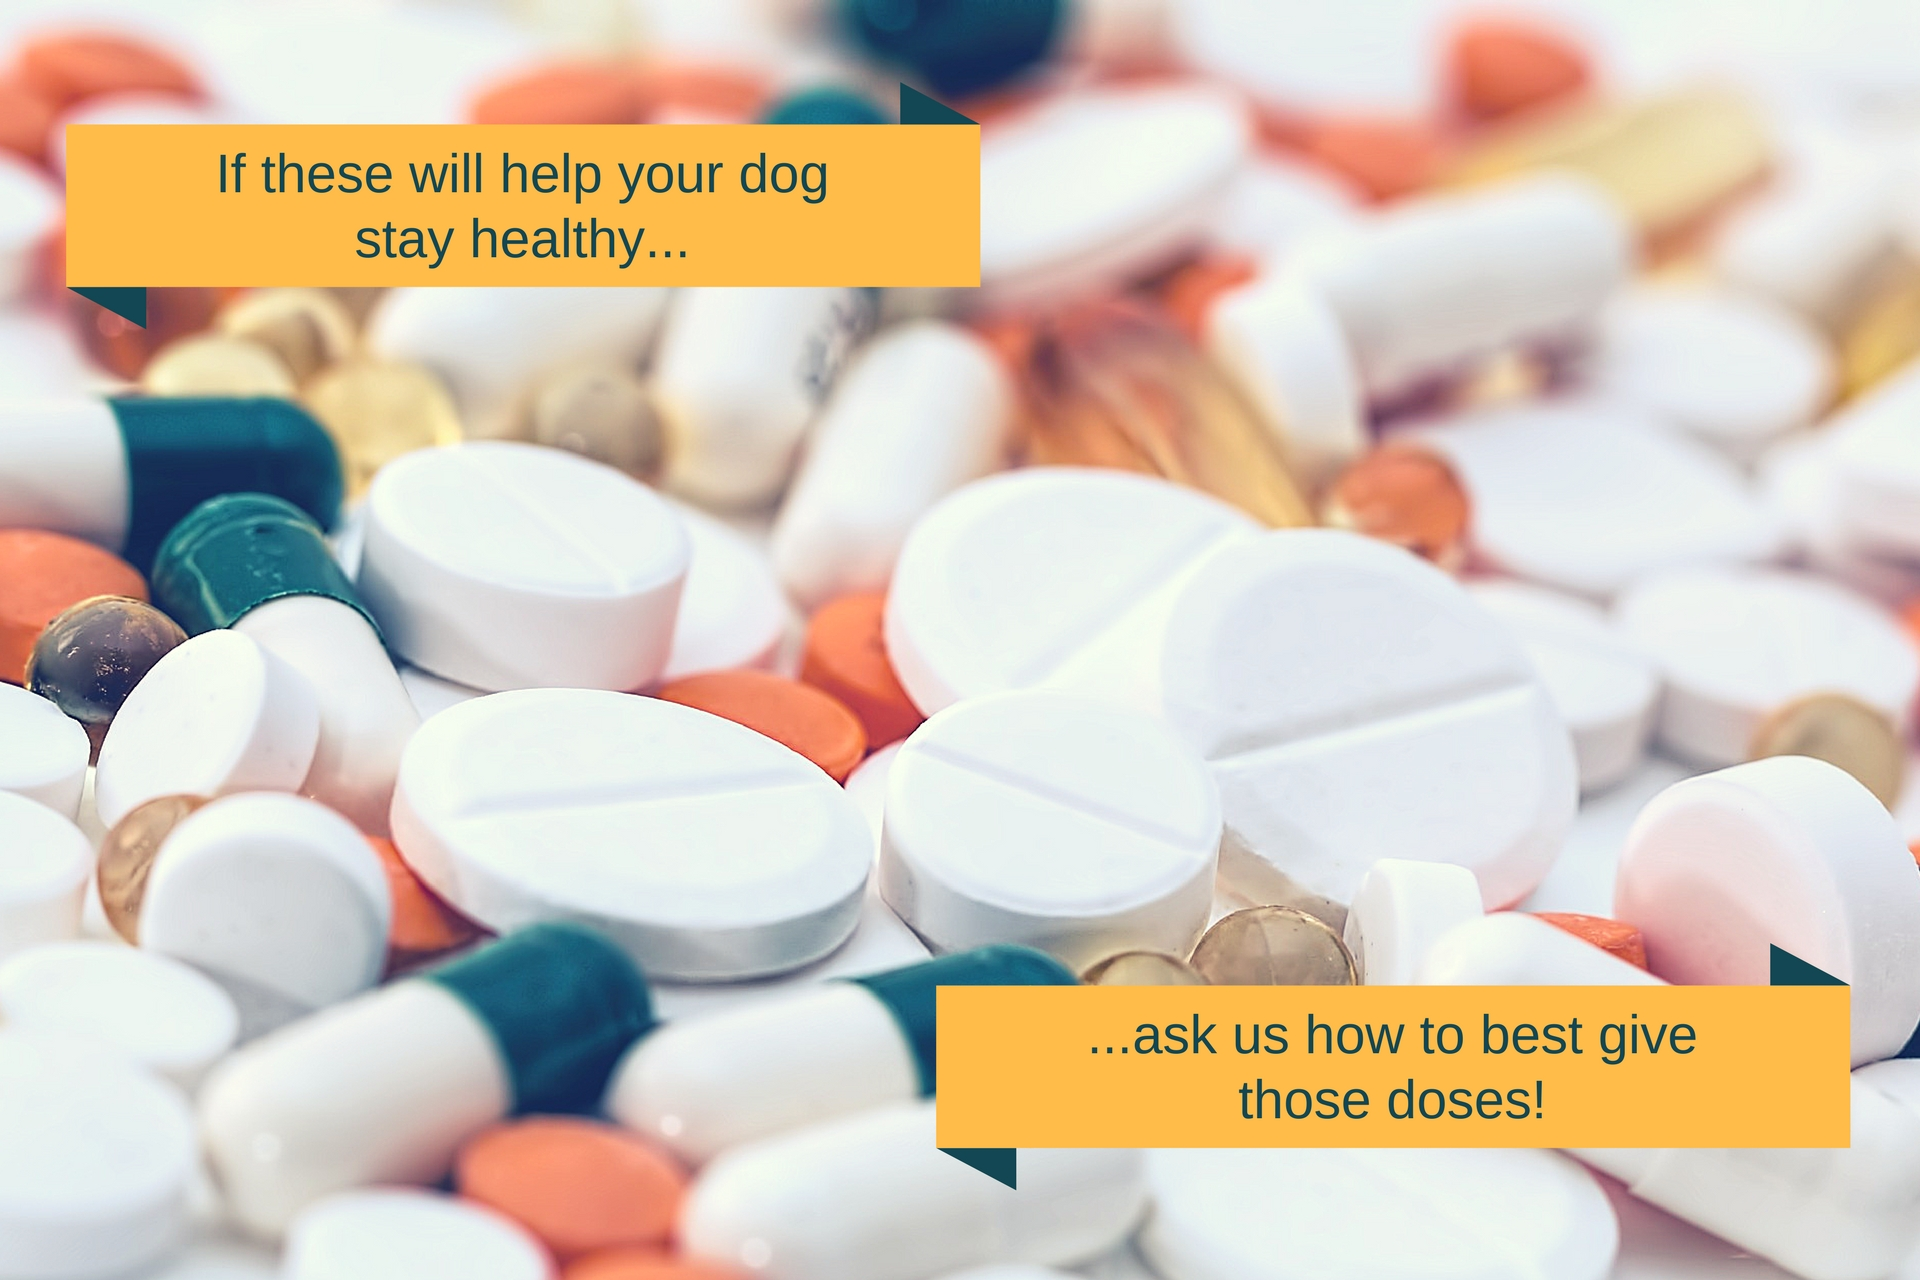 We want your dog to stay healthy, so feel free to ask us if you need help giving that medicine!